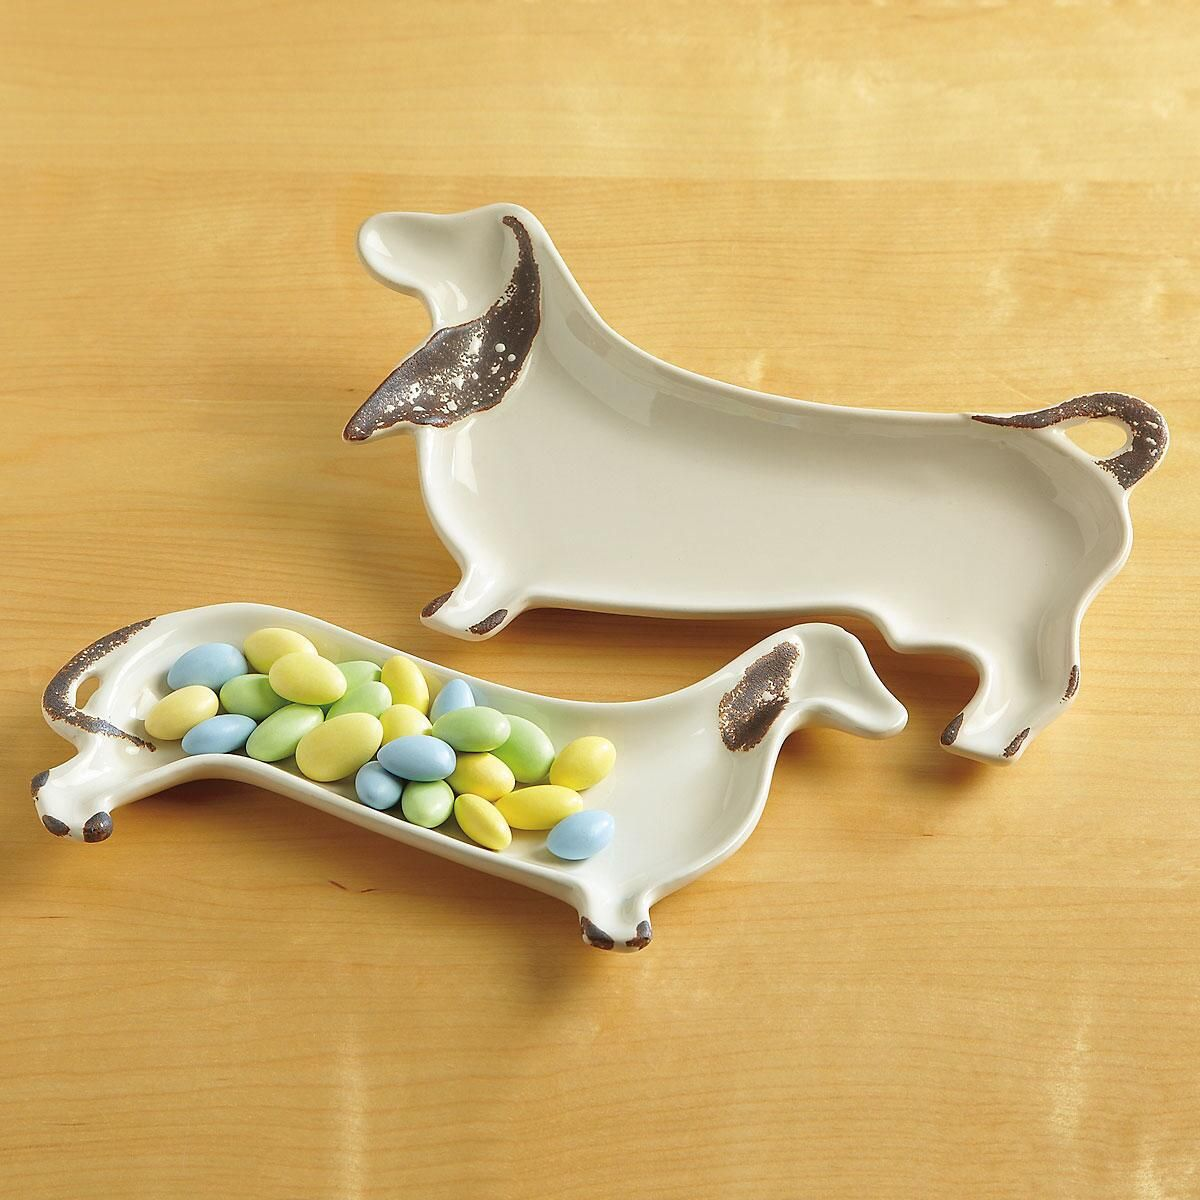 Dachshund Dishes